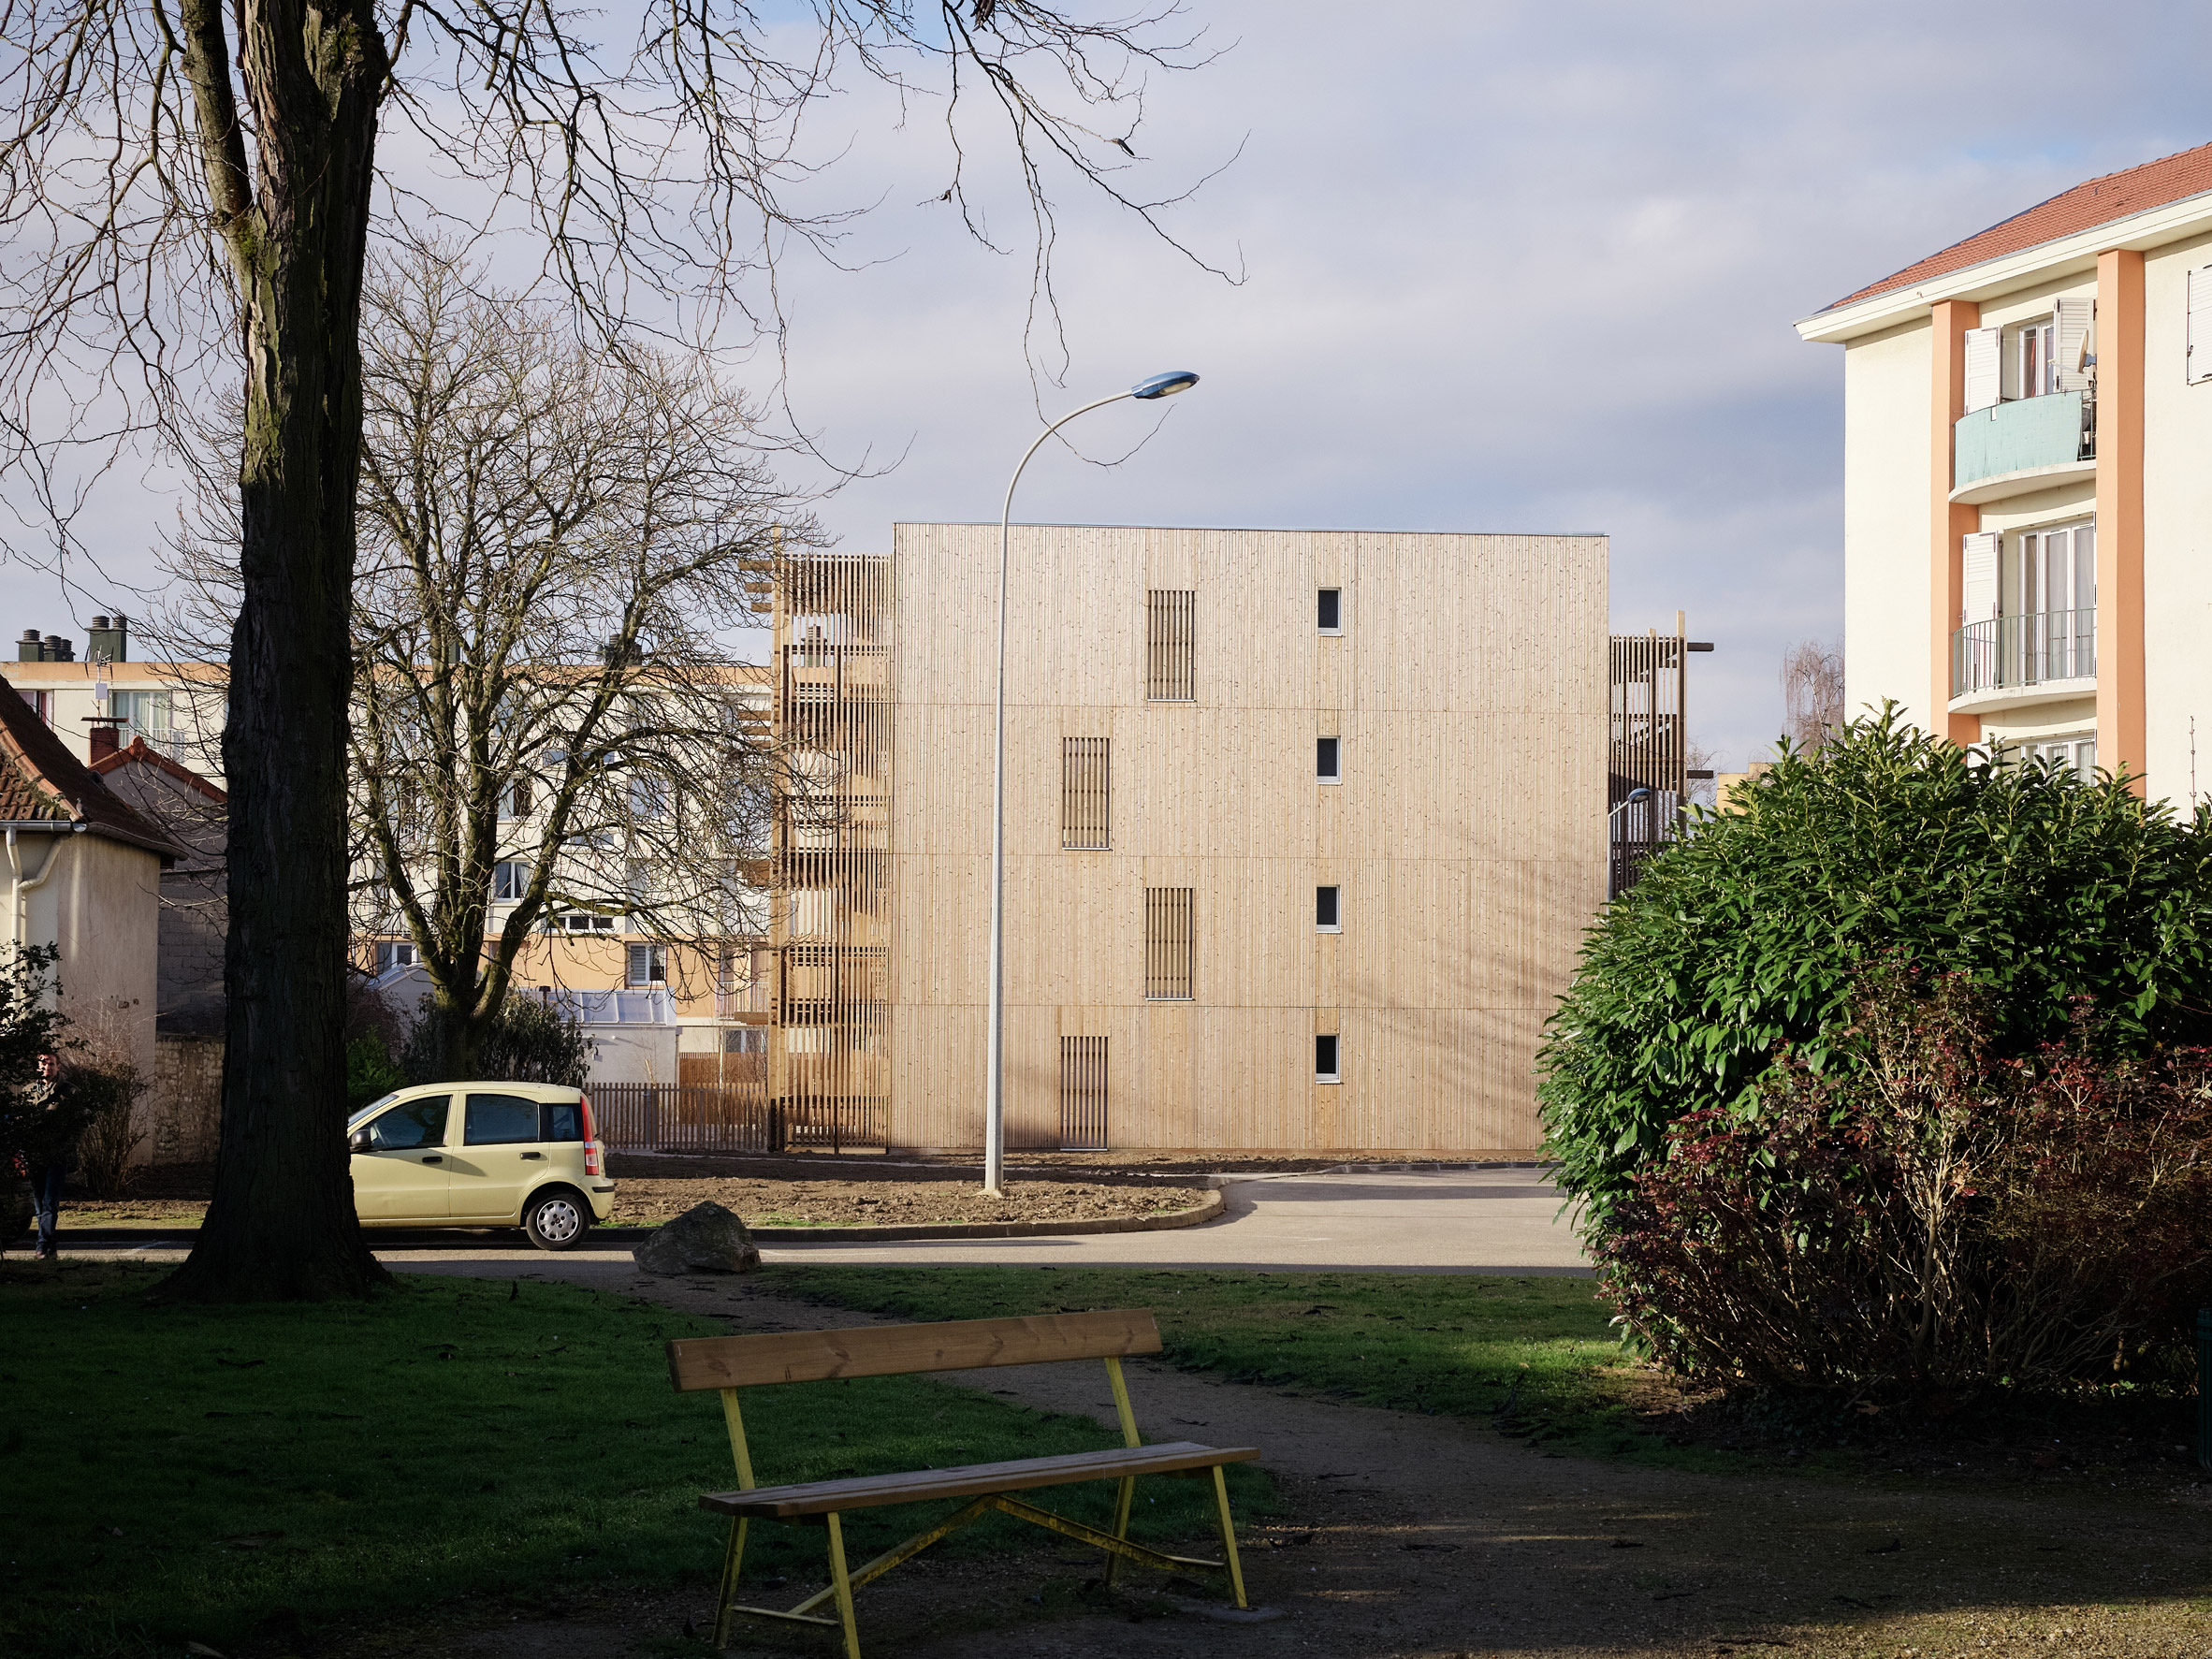 26 Social Housing by Odile and Guzy Architectes